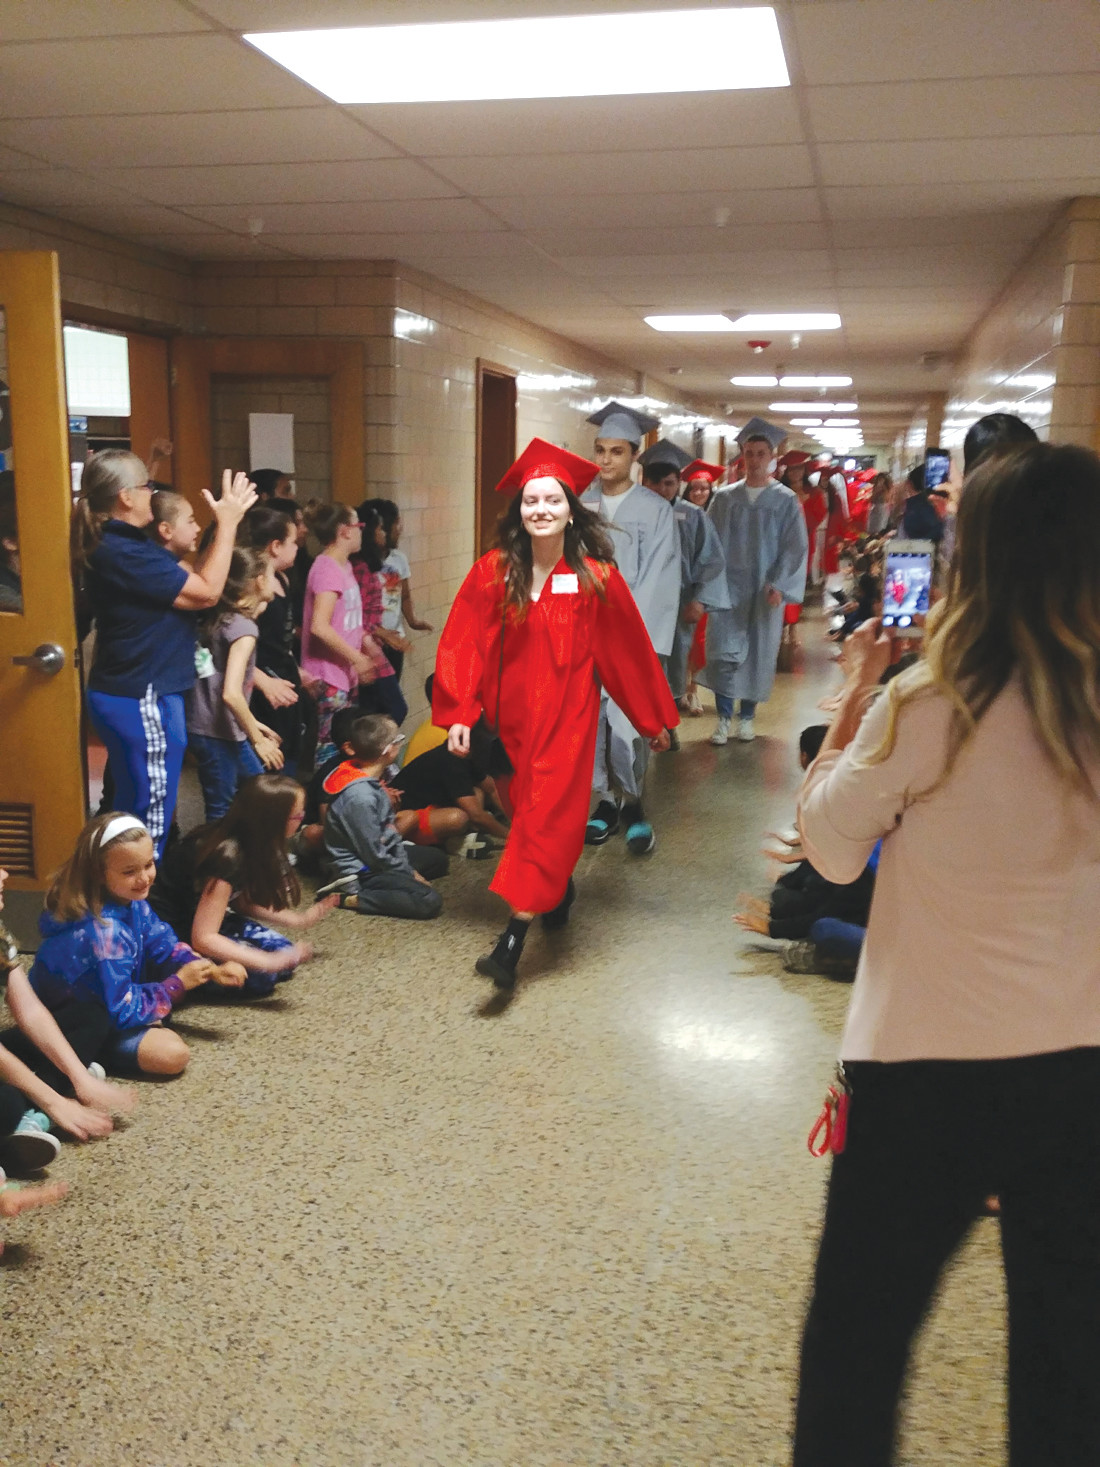 CELEBRITIES FOR A DAY: The seniors may not have been prepared for such a welcome, as the younger students at each school cheered, clapped and held up personalized signs and posters for the graduates.